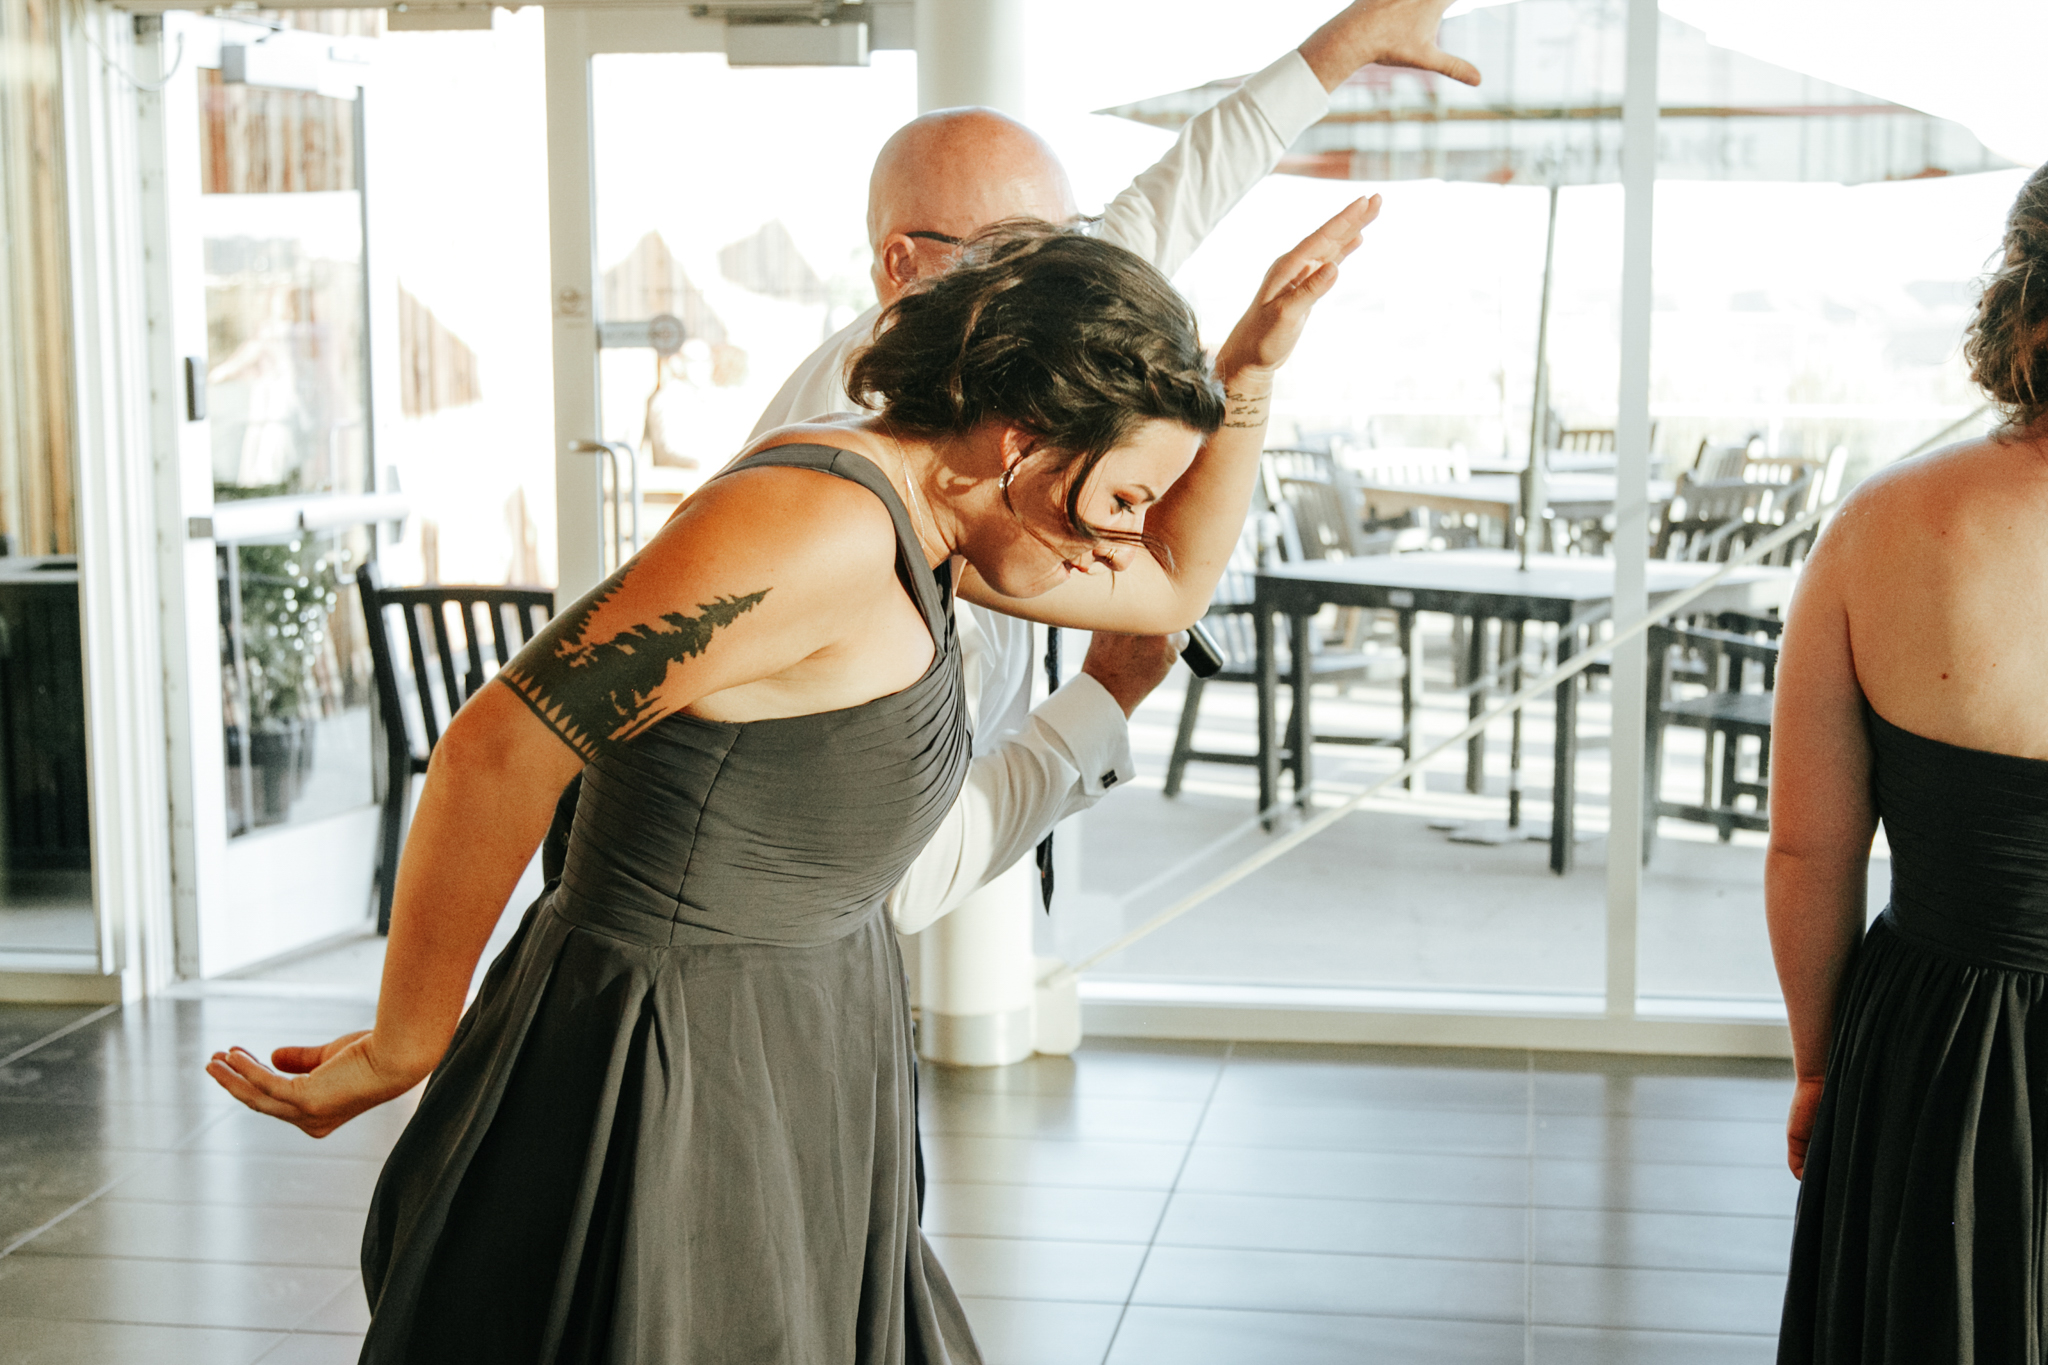 lethbridge-wedding-photographer-love-and-be-loved-photography-trent-danielle-galt-reception-picture-image-photo-224.jpg